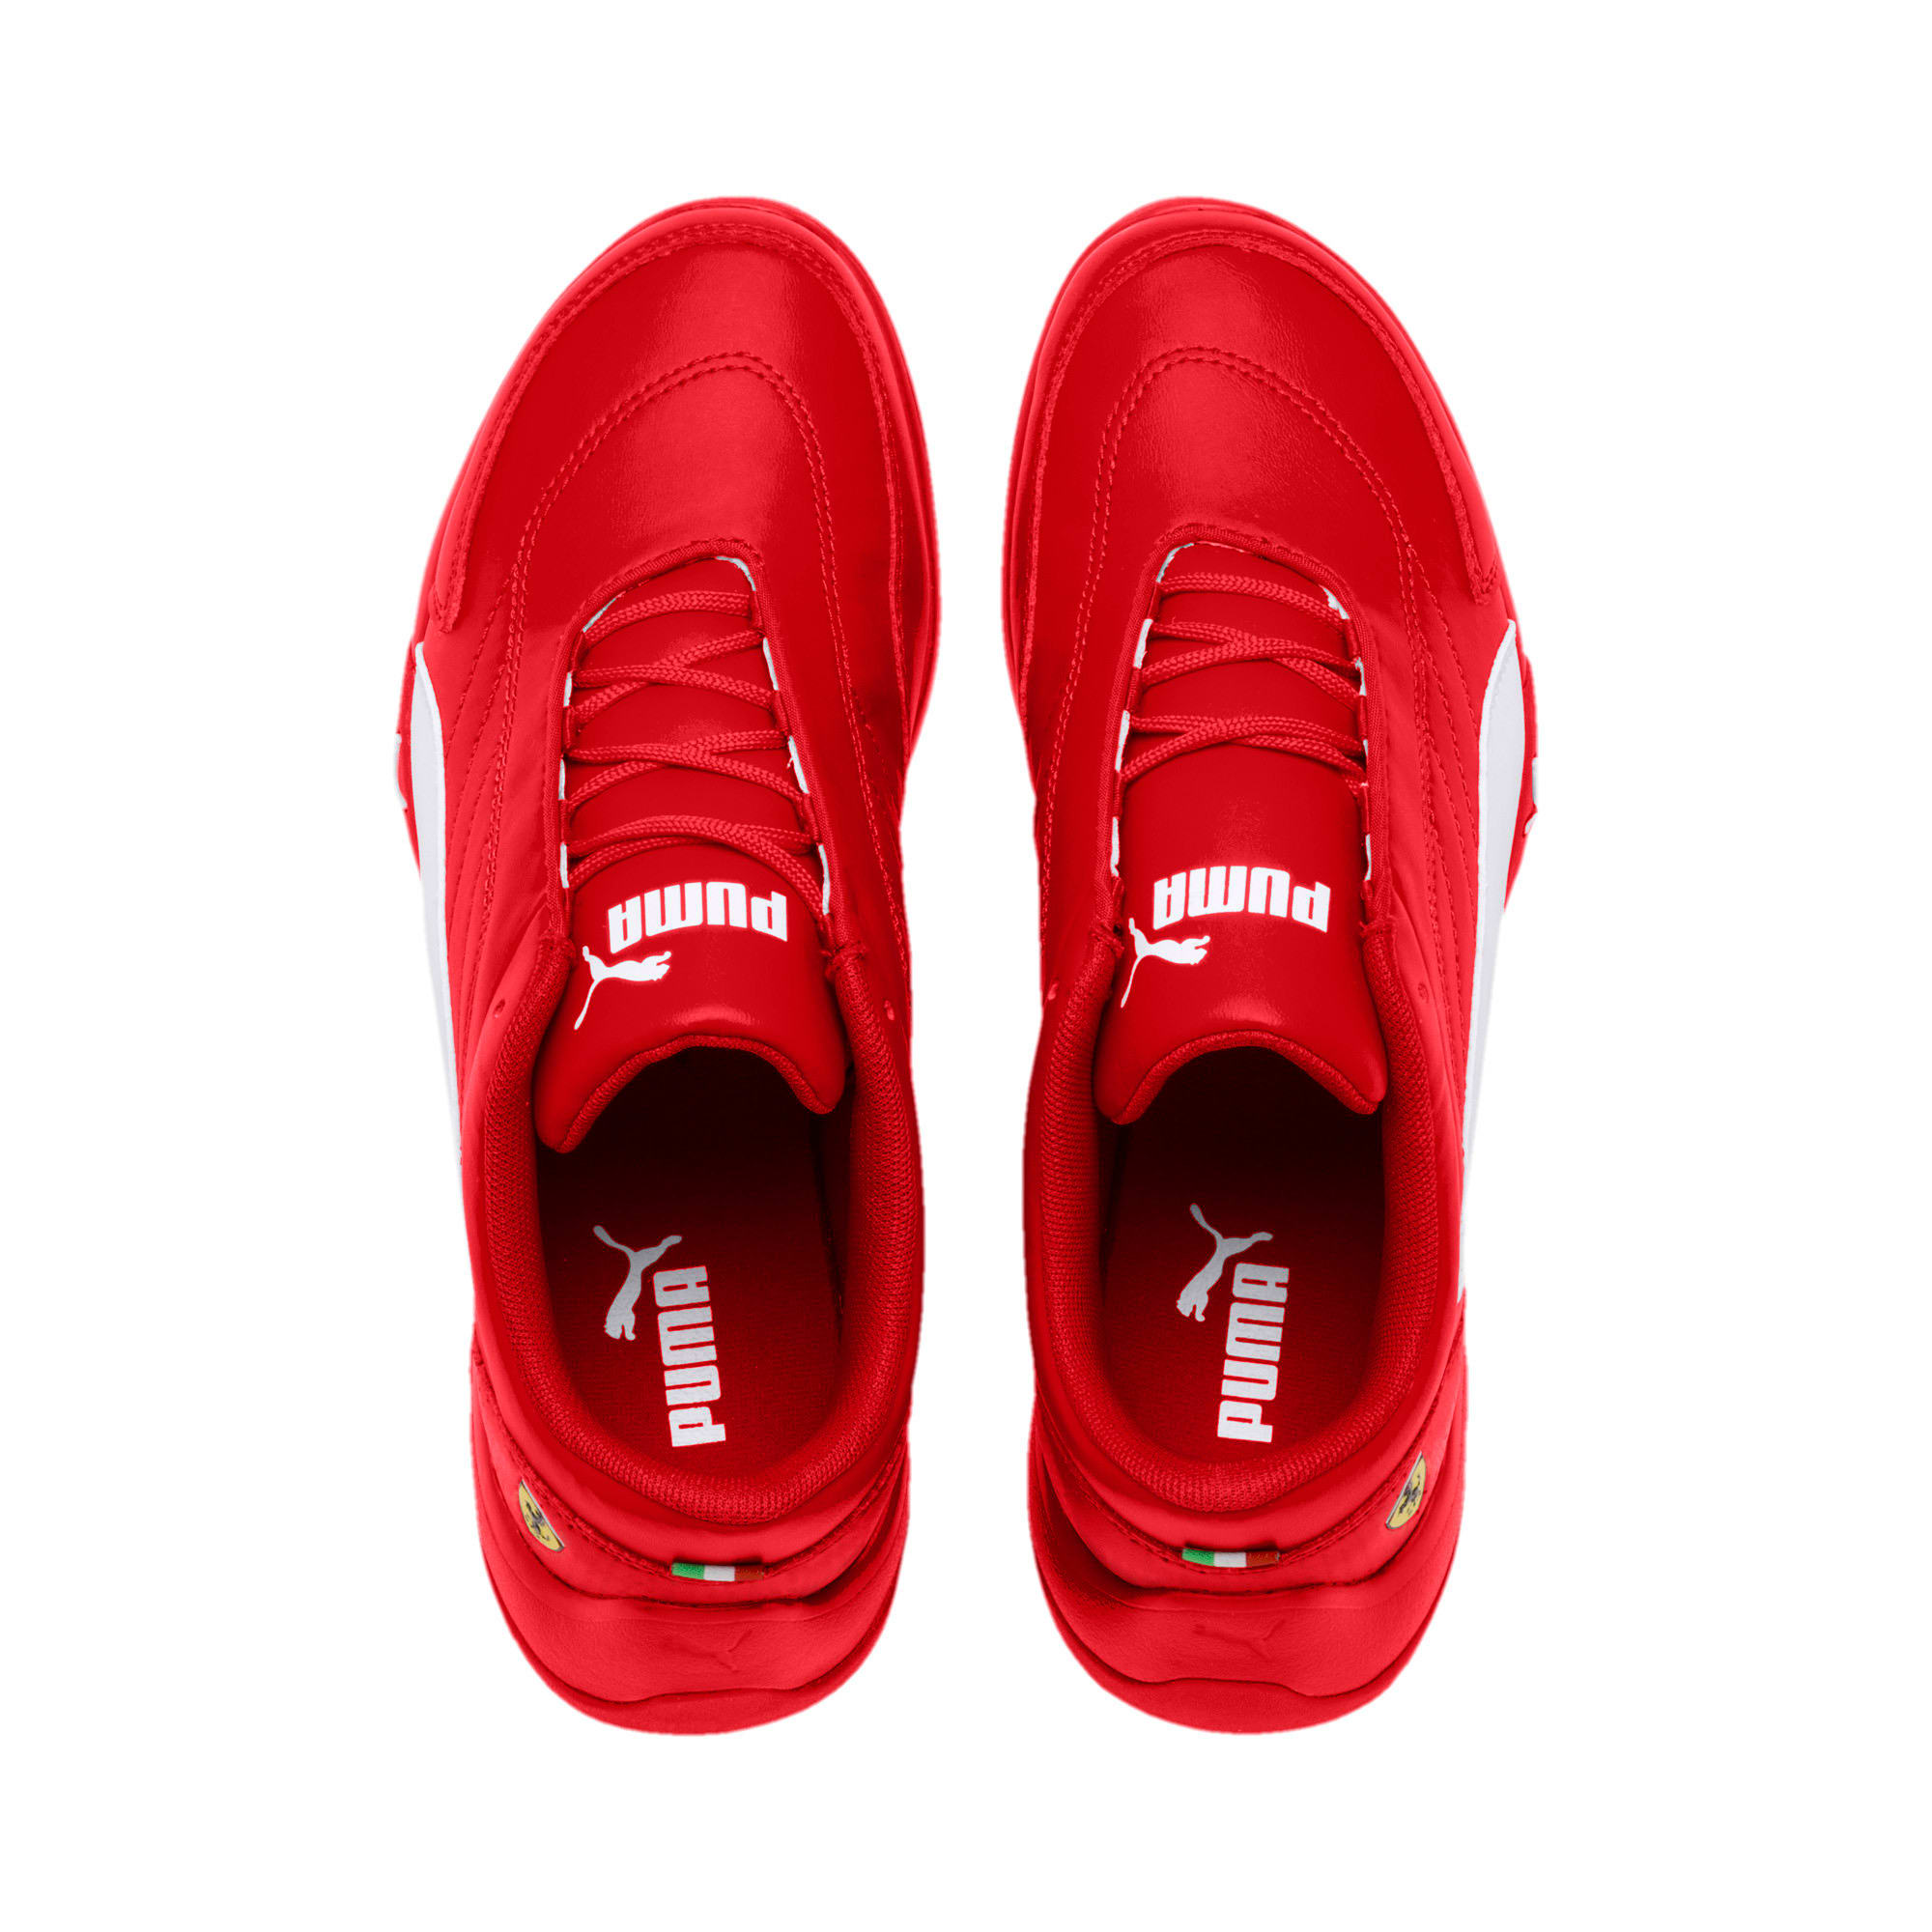 Thumbnail 6 of Ferrari Kart Cat III Youth Trainers, Rosso Corsa-Wht-Rosso Corsa, medium-IND